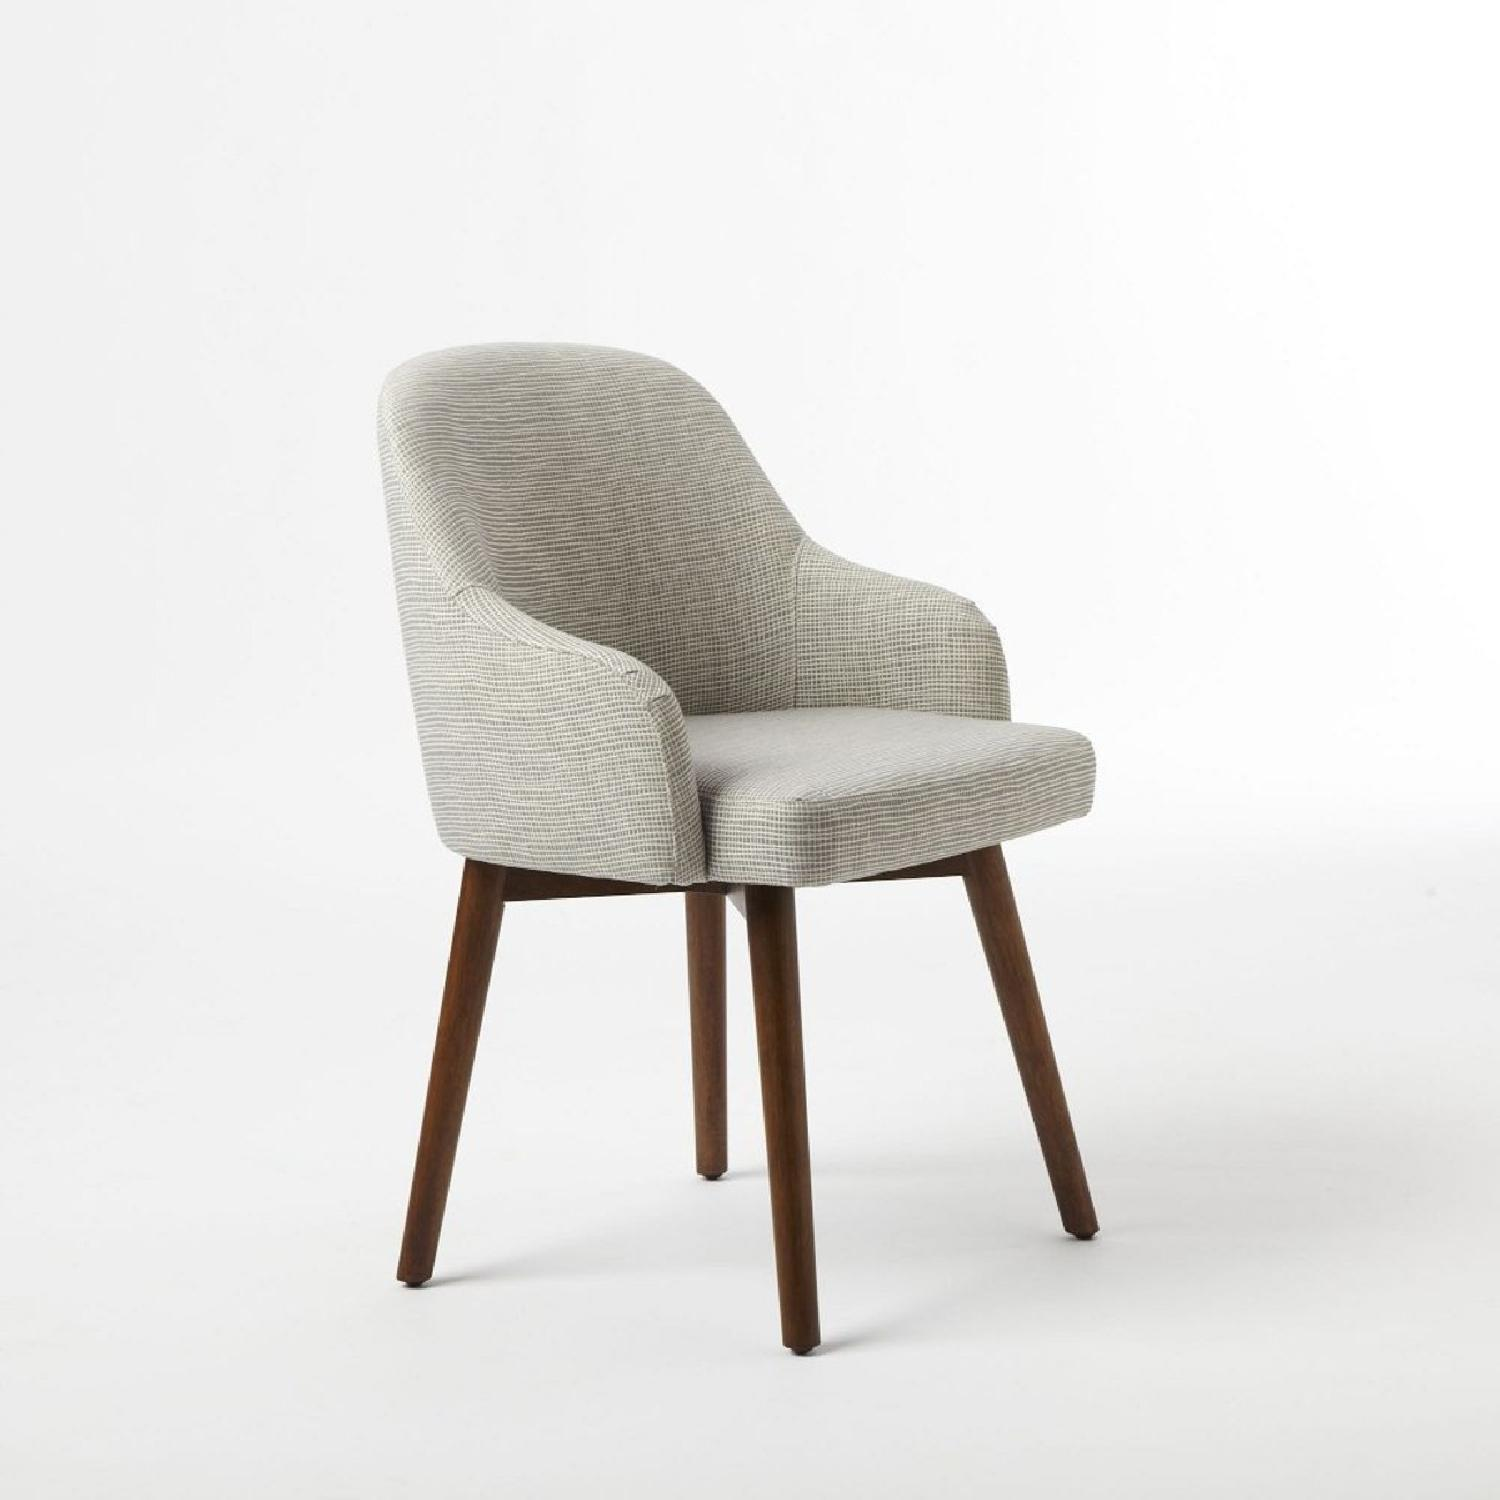 West Elm Chairs: West Elm Saddle Dining Chairs